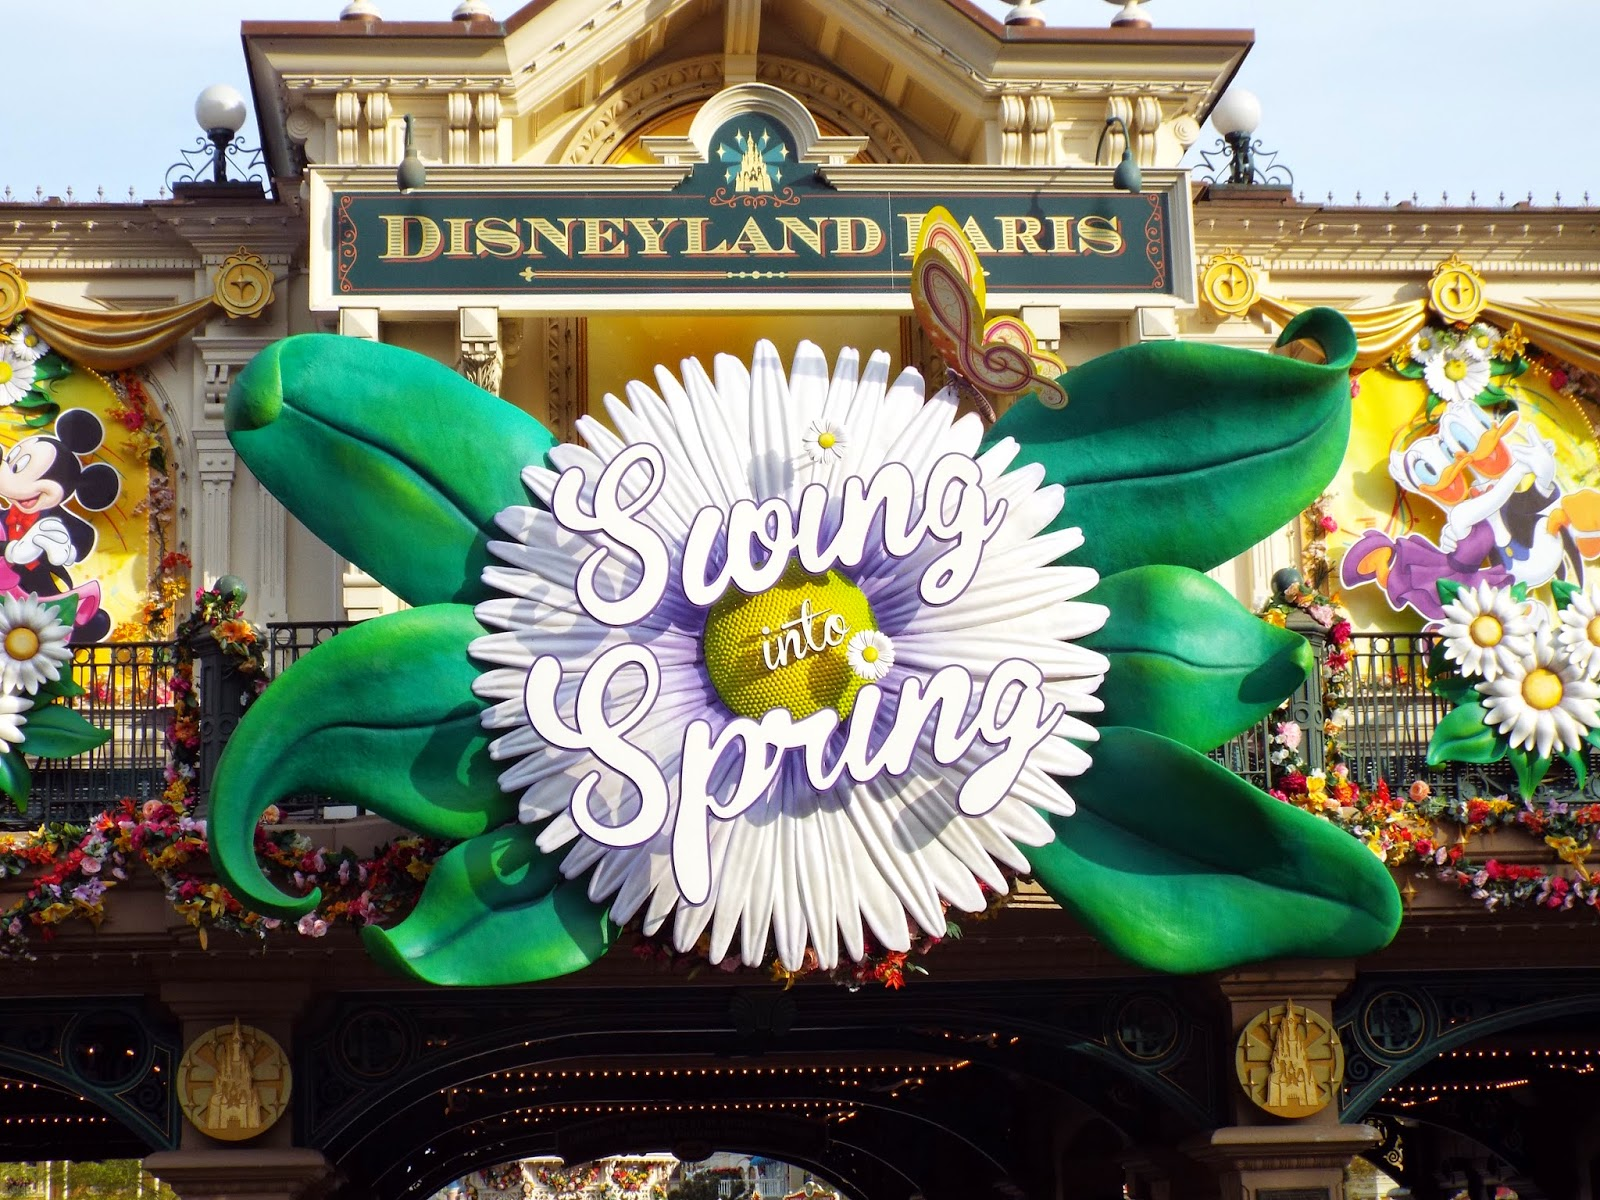 Toy Saturn Swing Into Spring Disneyland Paris